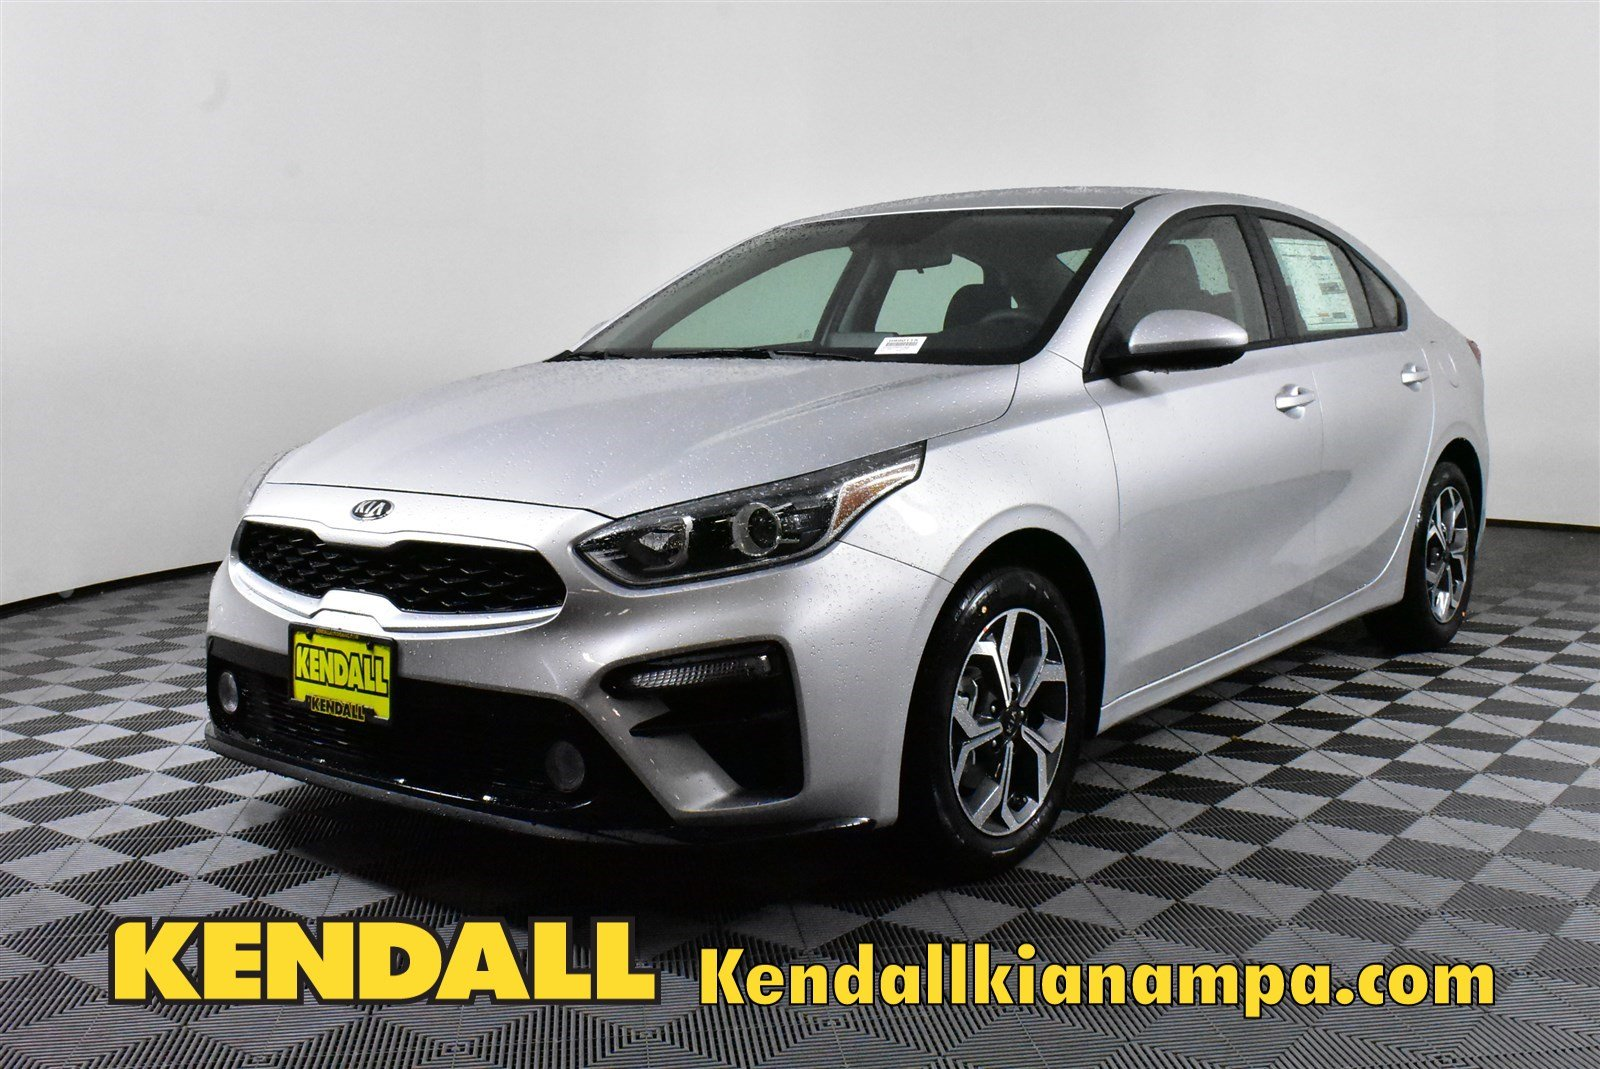 New 2019 Kia Forte Lxs In Nampa D990115 Kendall At The Idaho Center Auto Mall